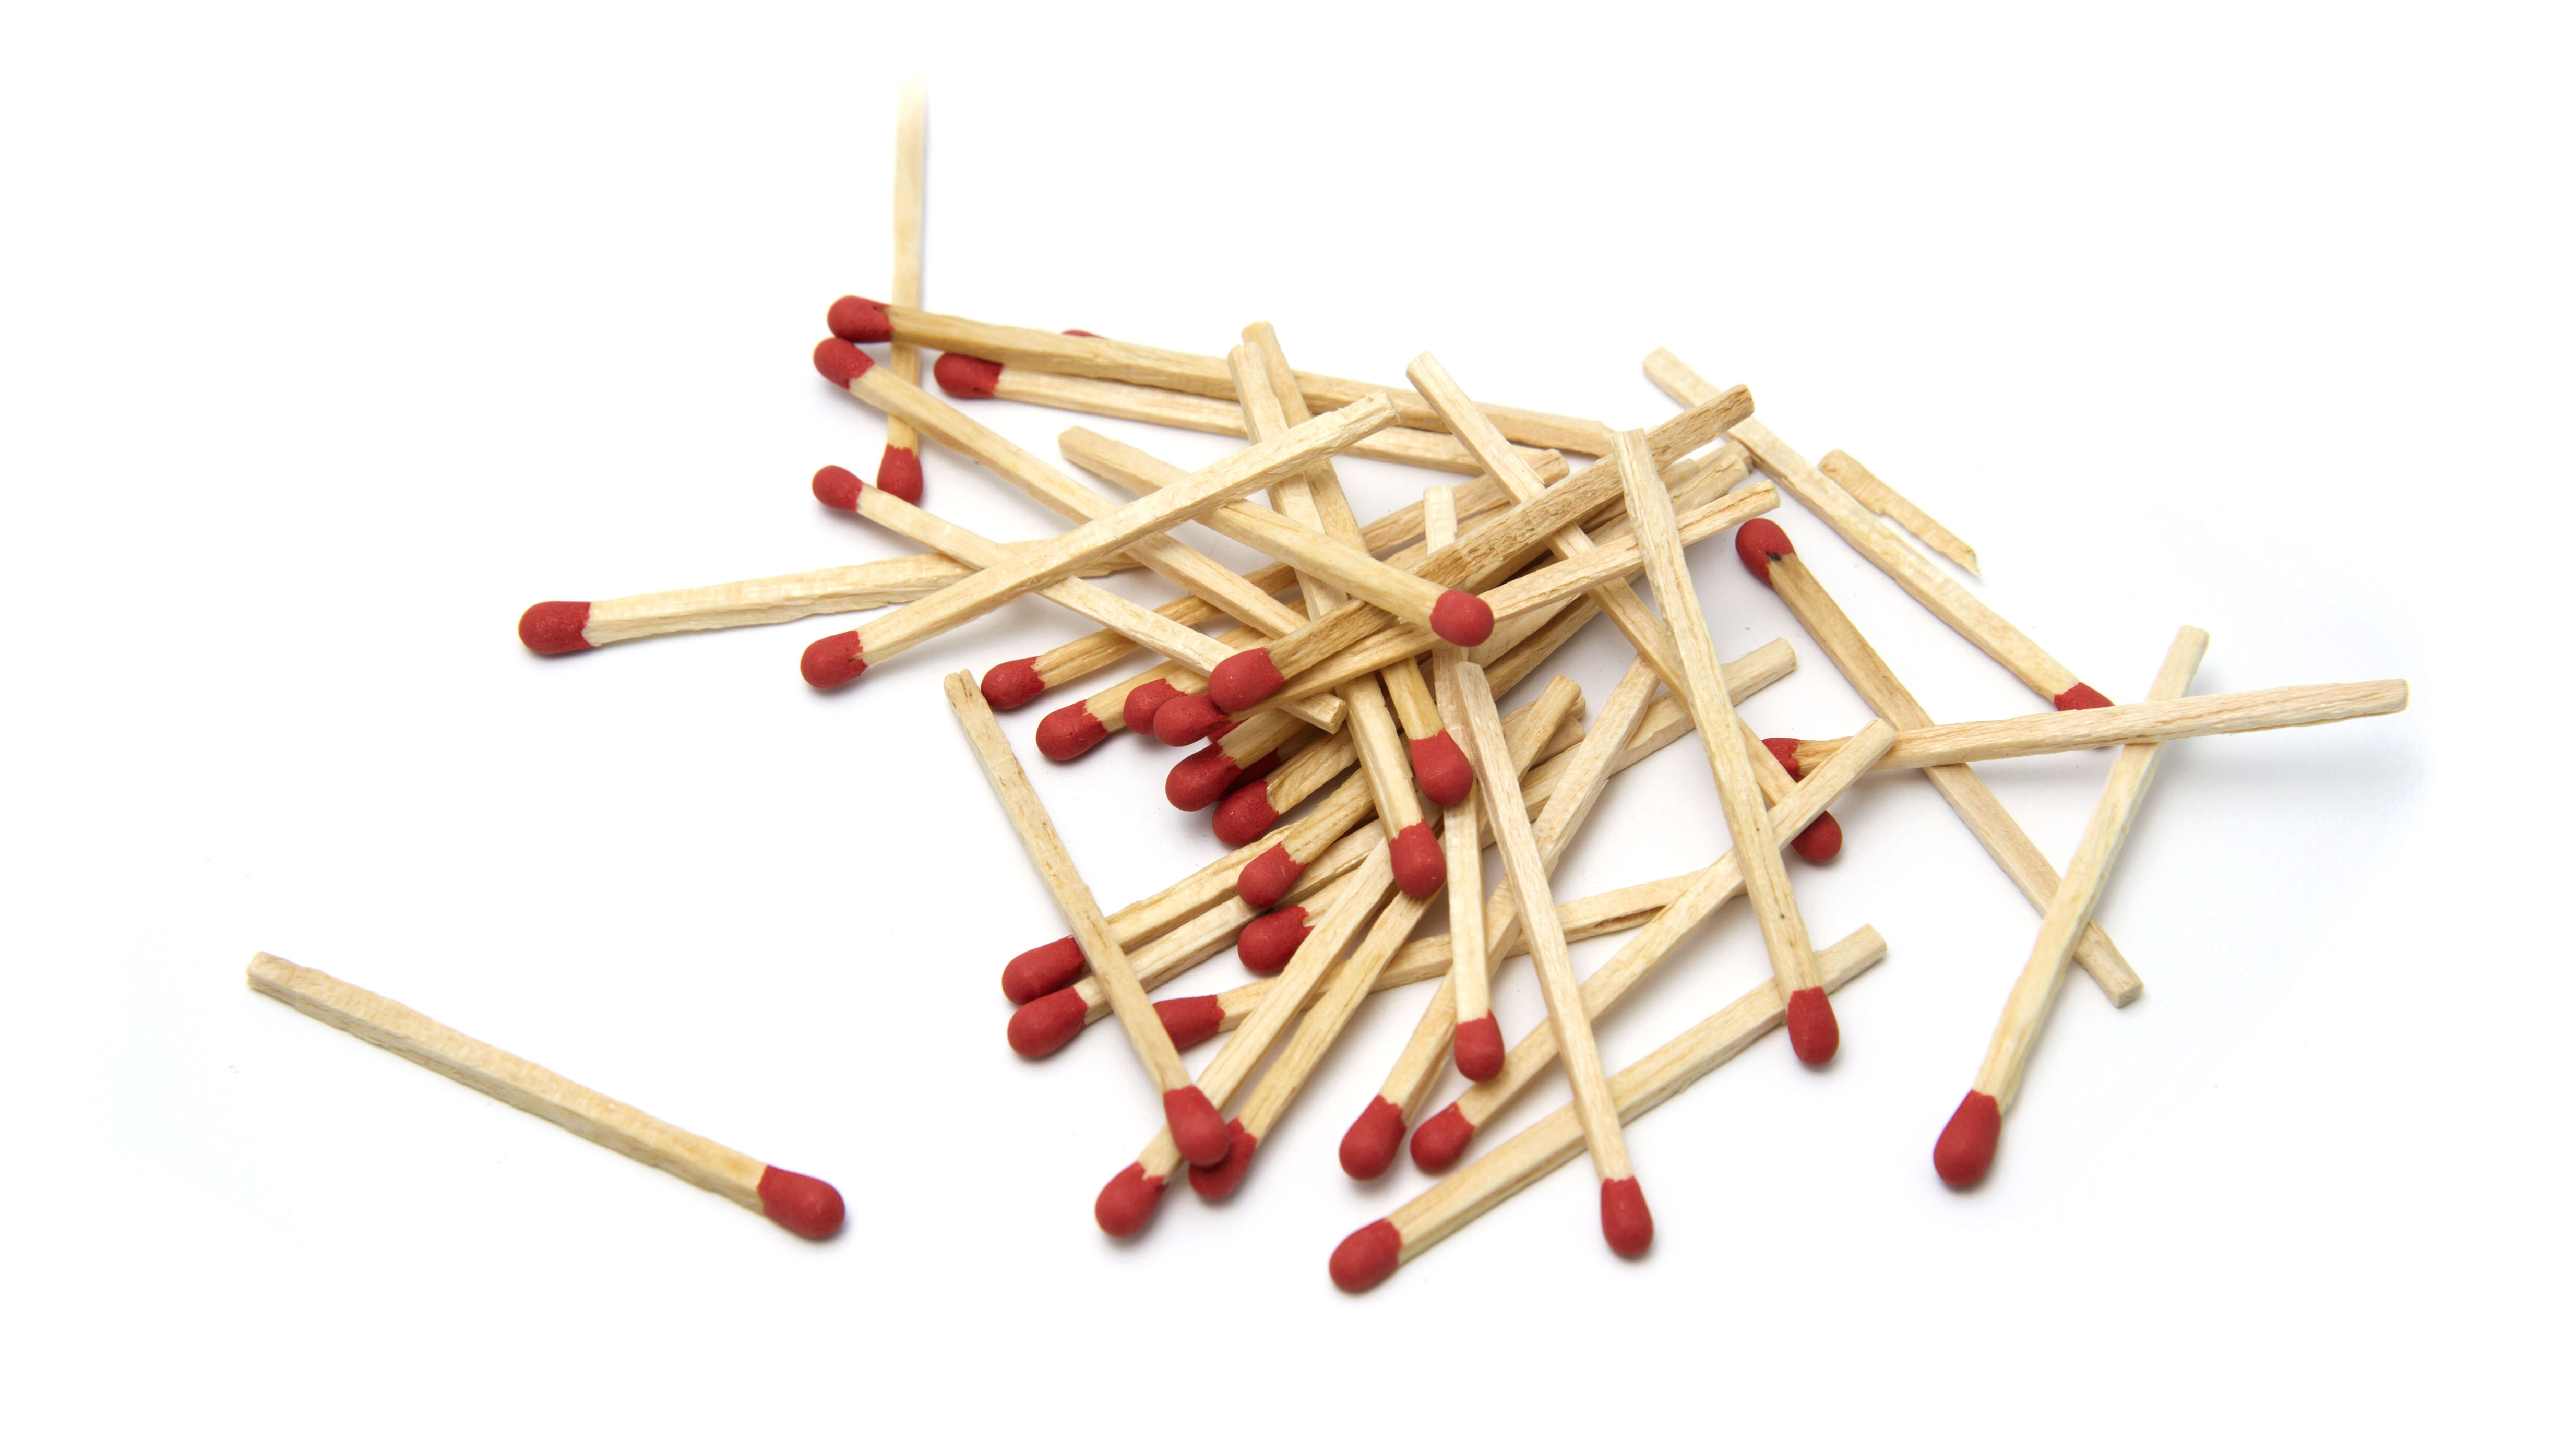 Mindbender: Can You Move 2 Matchsticks to Place the Coin Outside, but Keep Matches in the Same Shape?